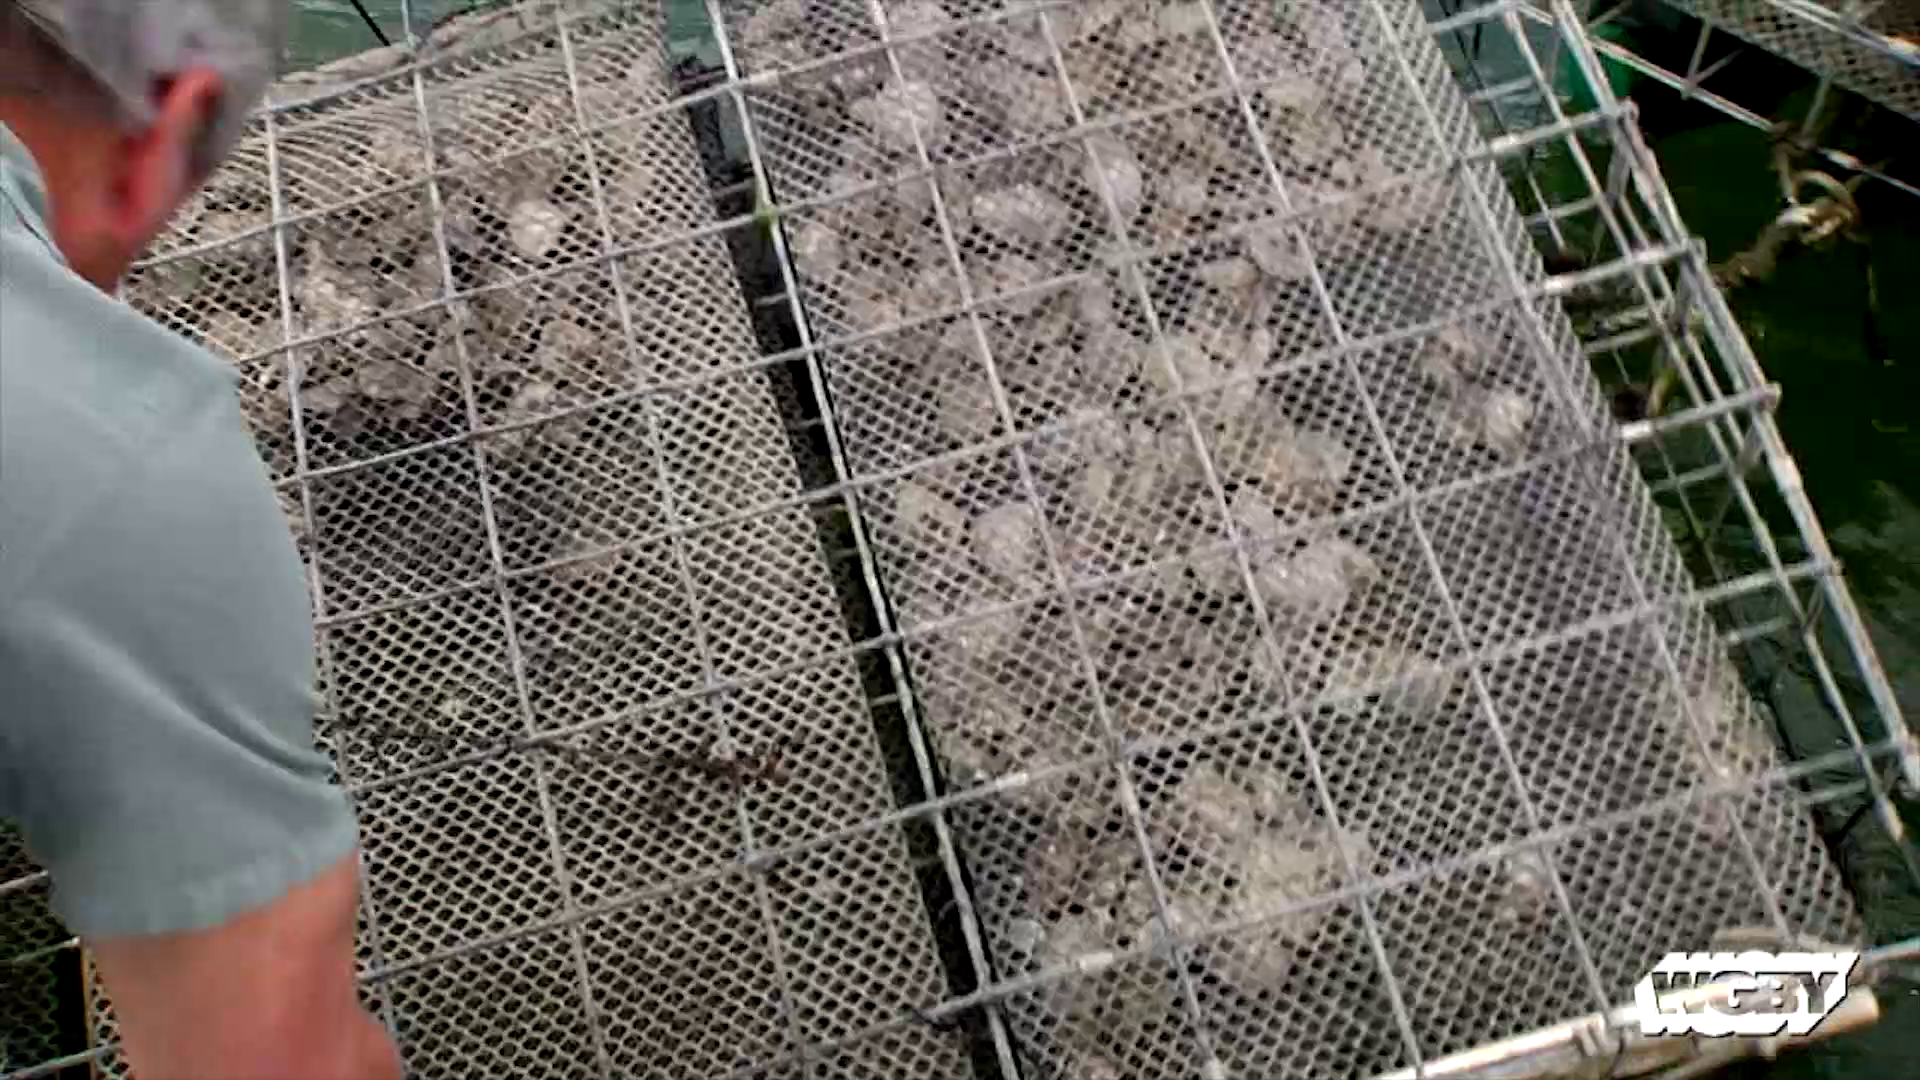 Acidic Ocean Water is Changing New England Oysters